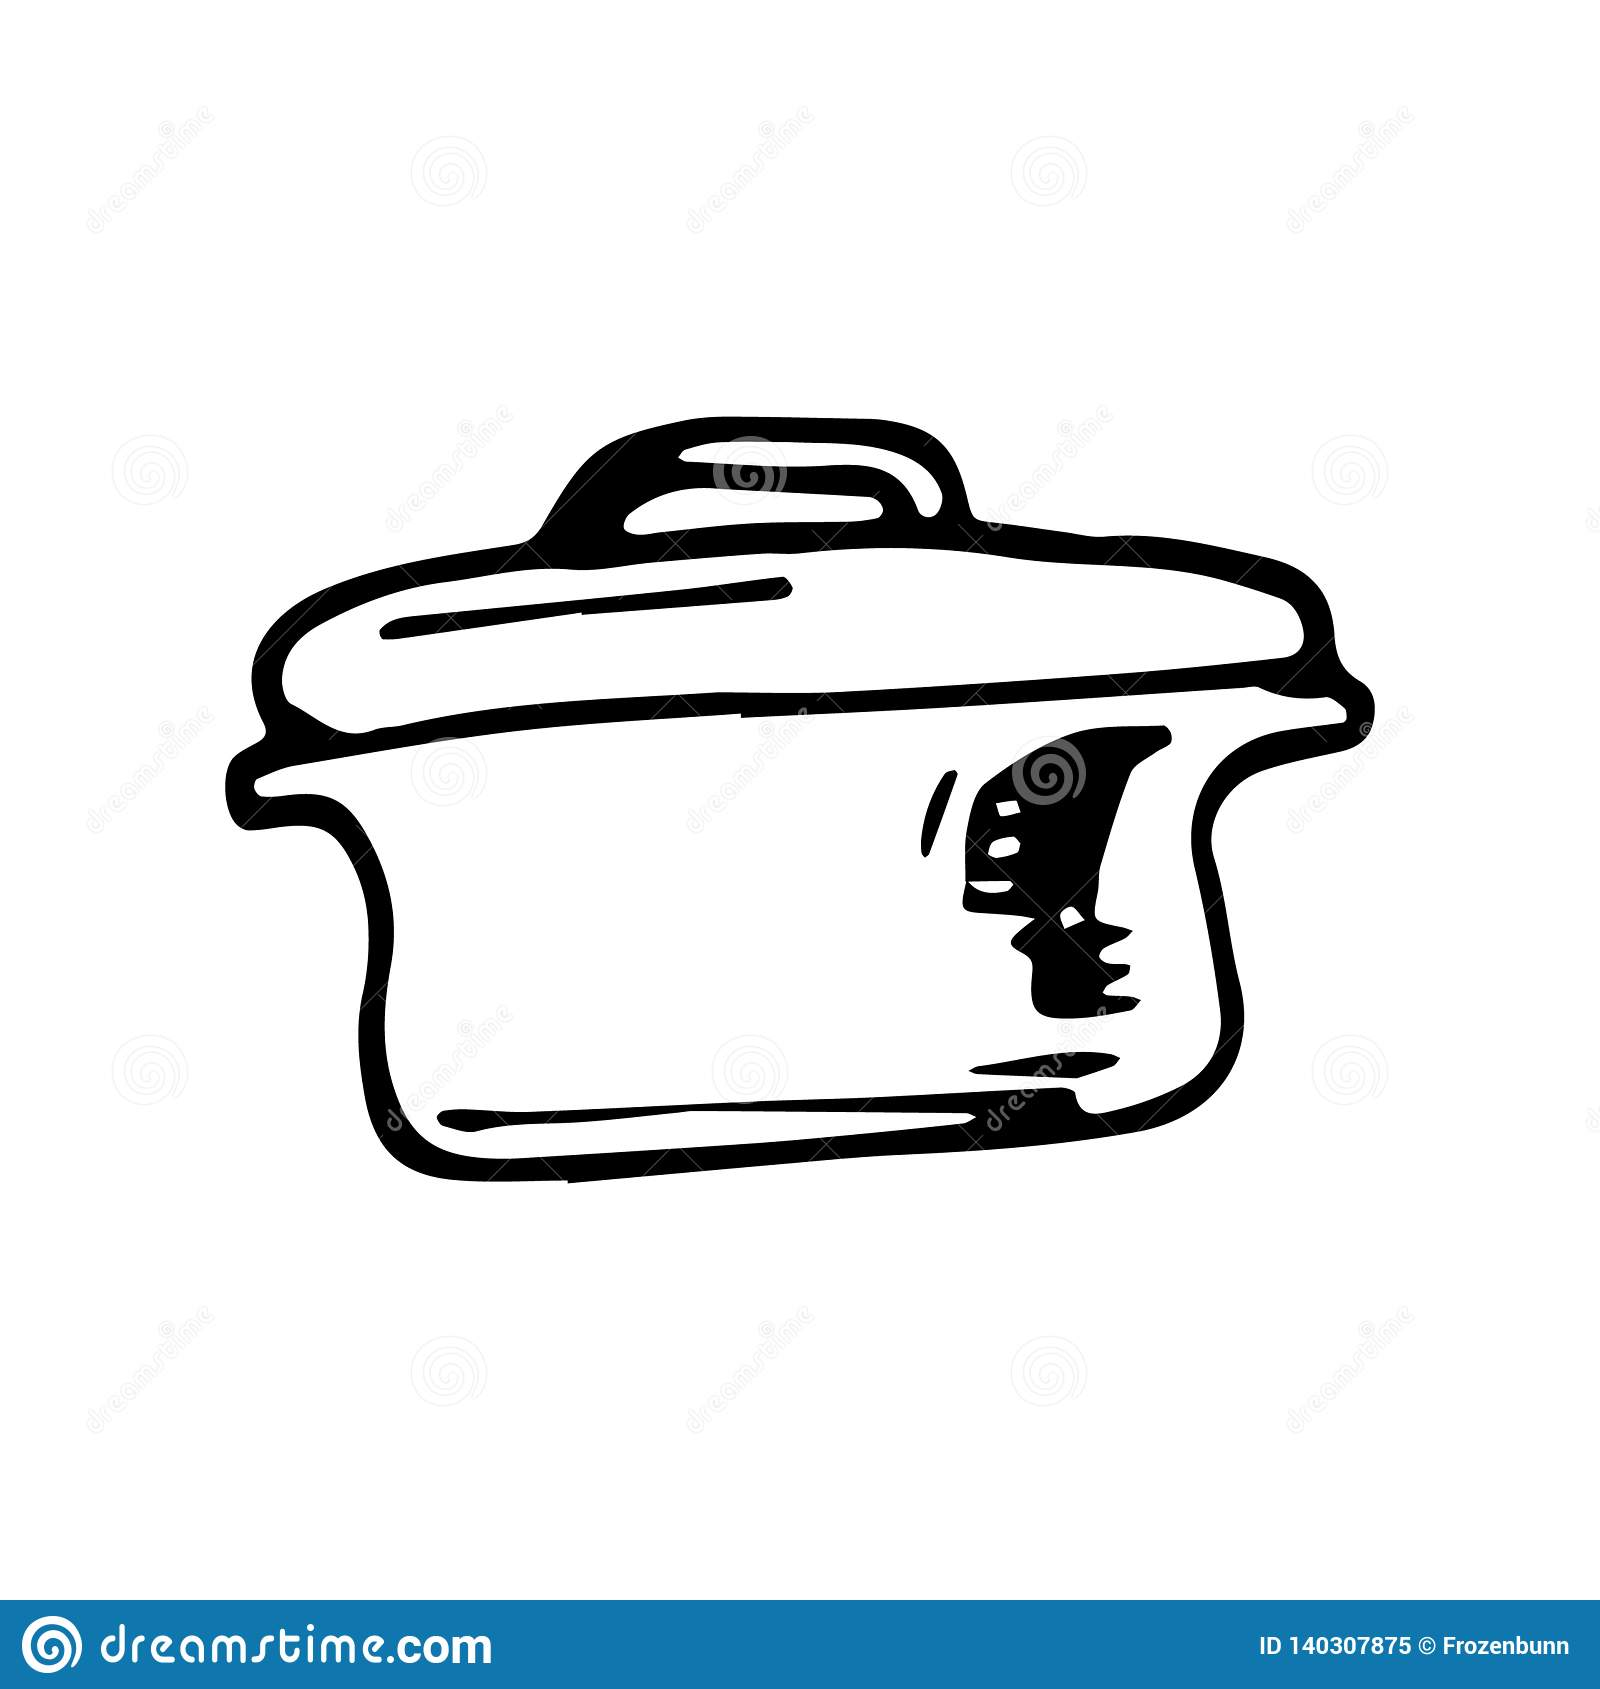 Hand Drawn pan doodle. Sketch style icon. Decoration element. Isolated on white background. Flat design. Vector illustration